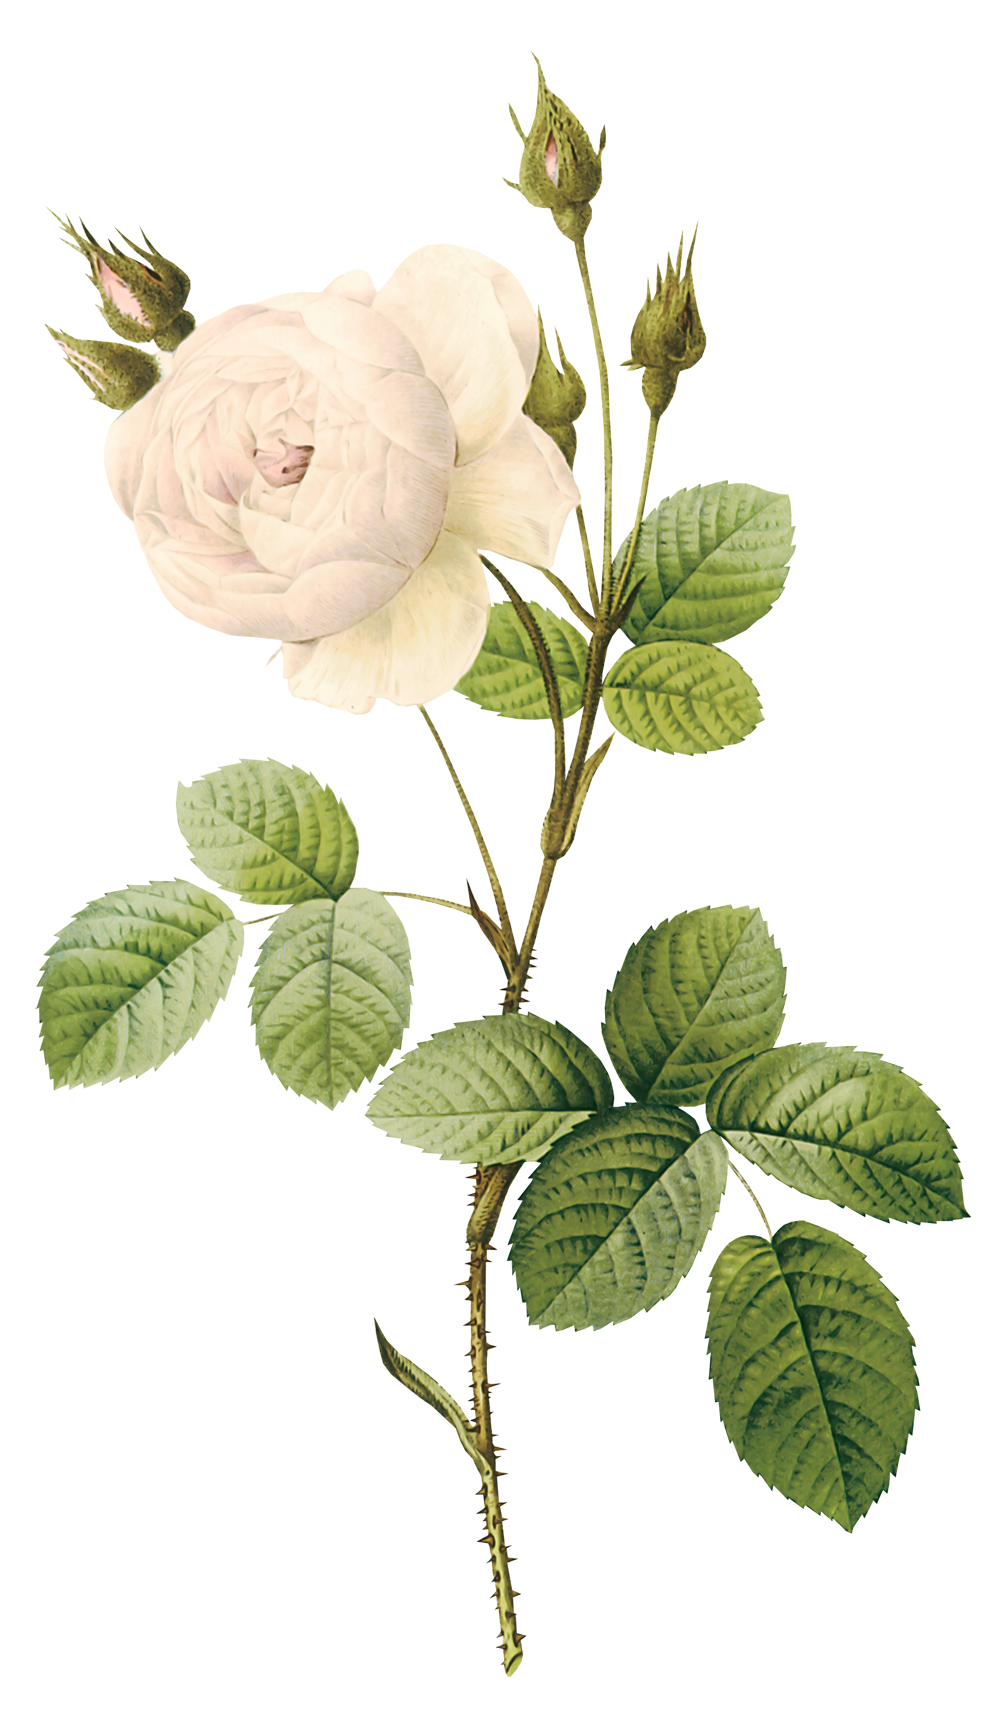 White Roses Png Image Purepng Free Transparent Cc0 Png Image Library